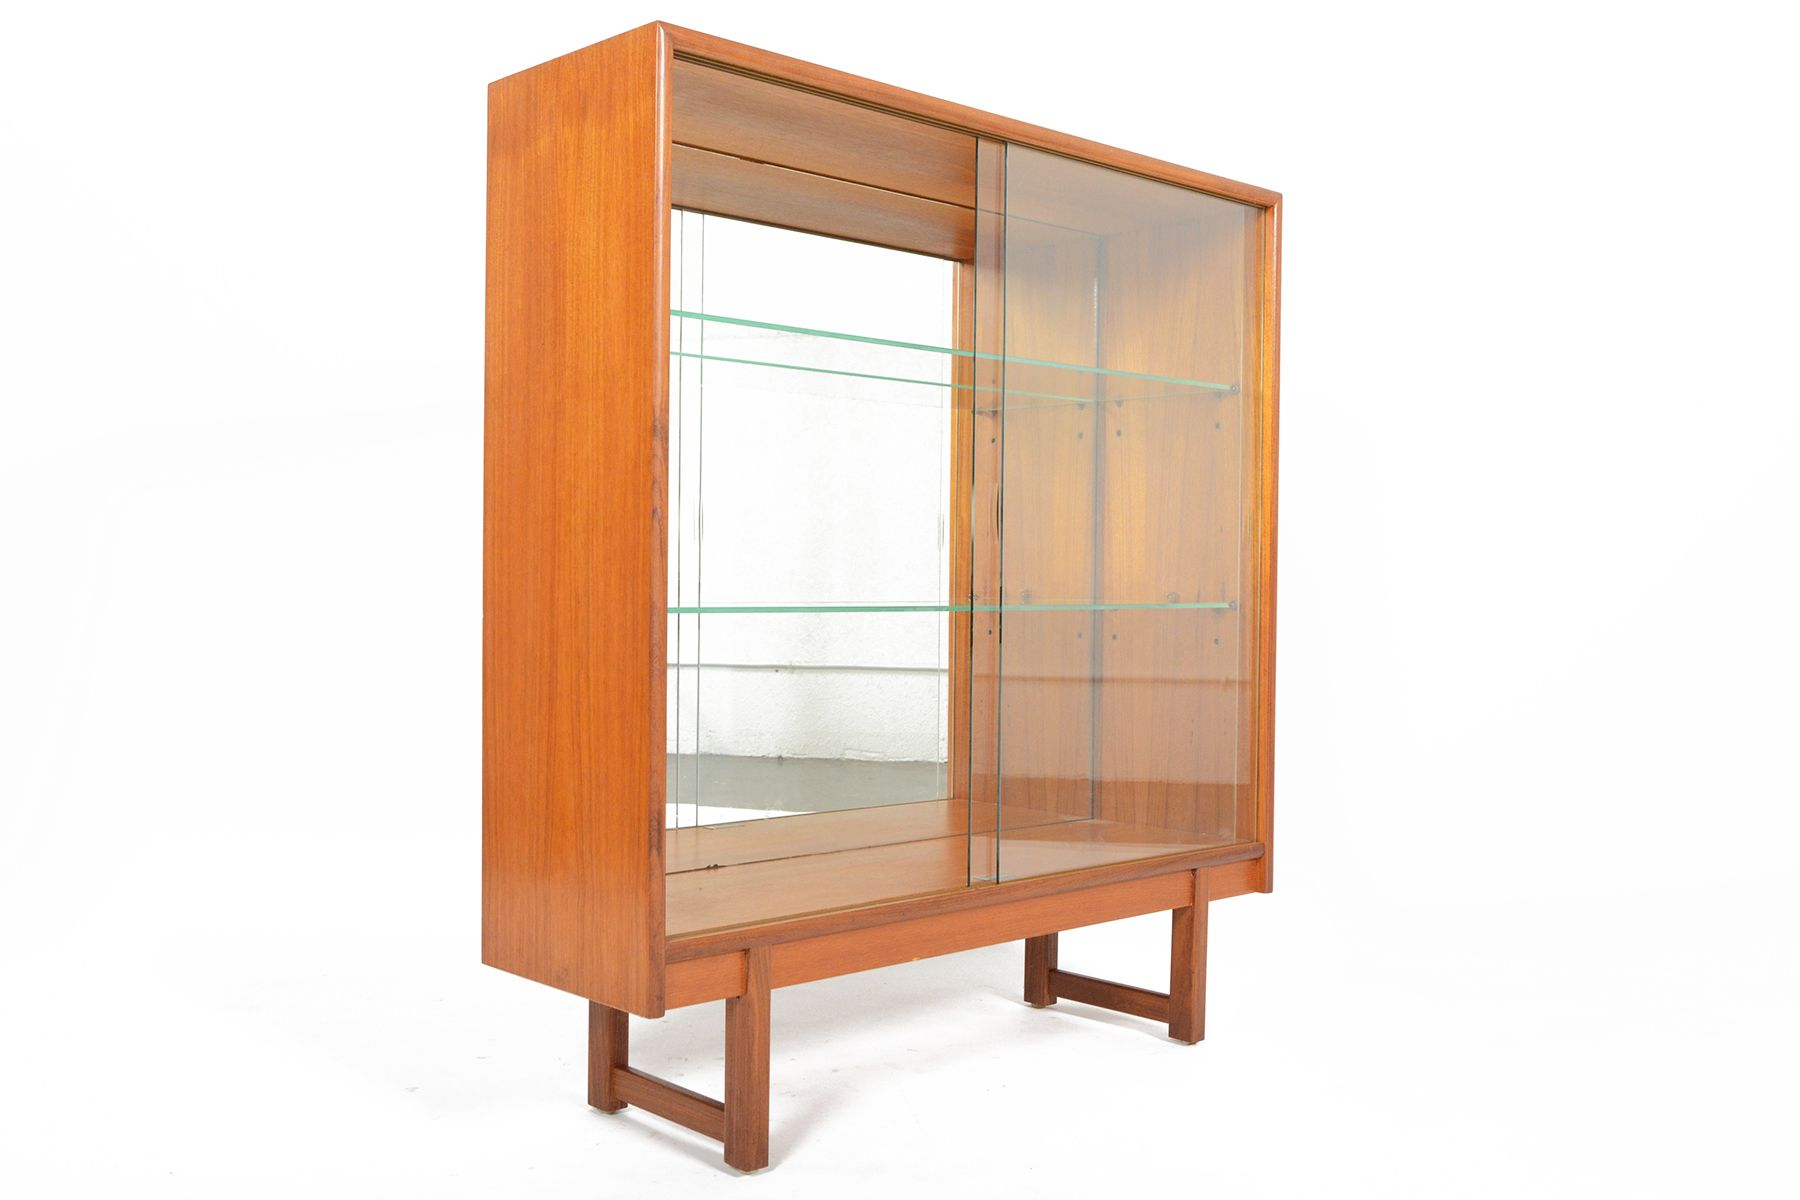 this english modern mid century bookcase was by turnidge of london in the 1960s this amazing piece features a solid teak